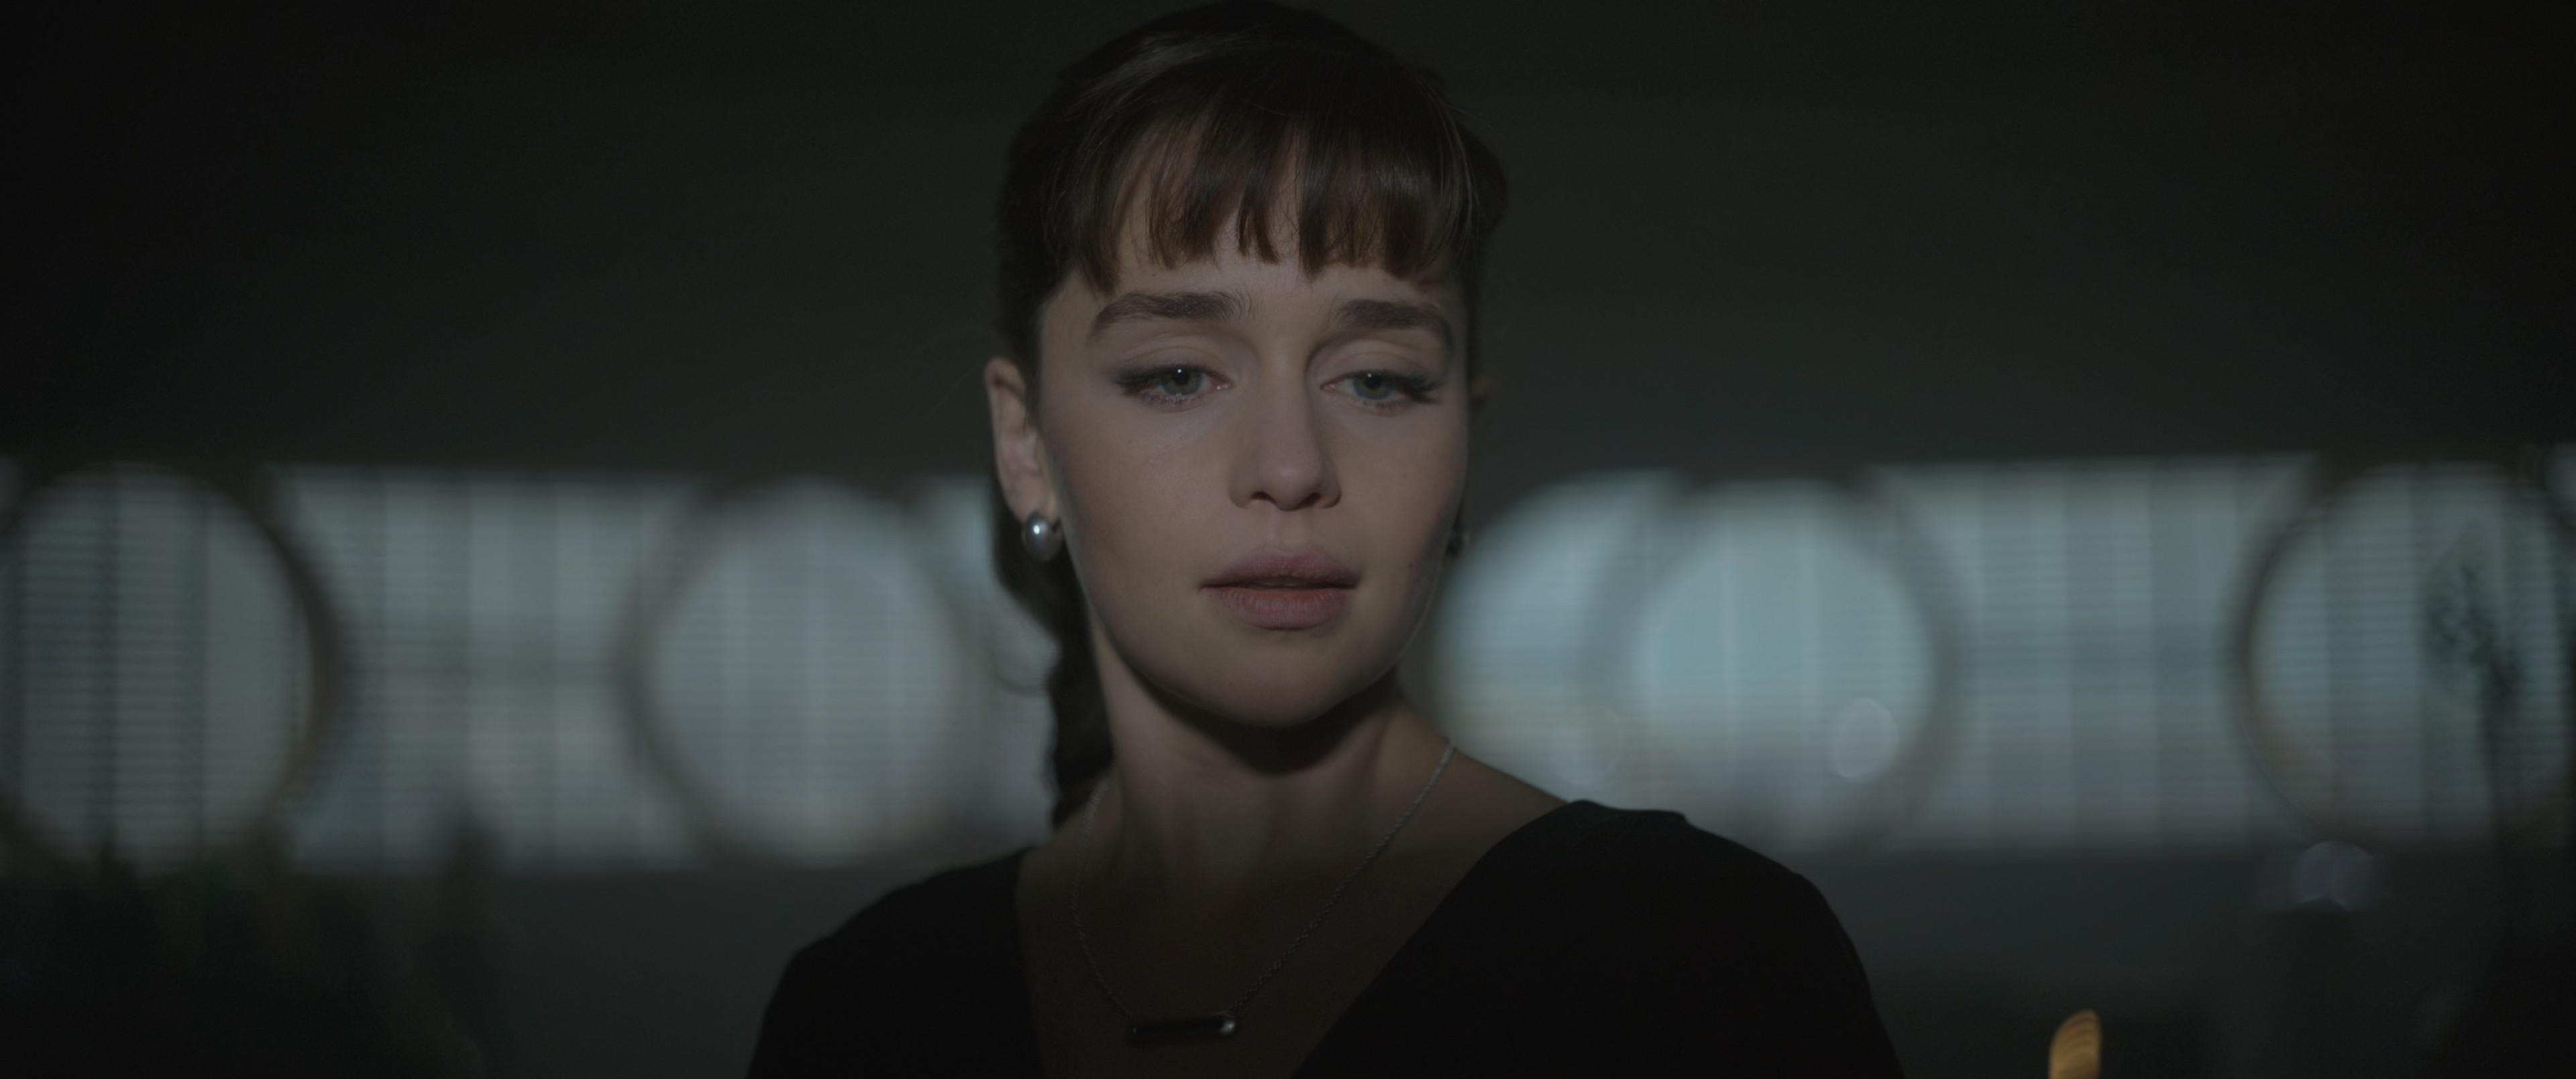 star wars solo qi'ra